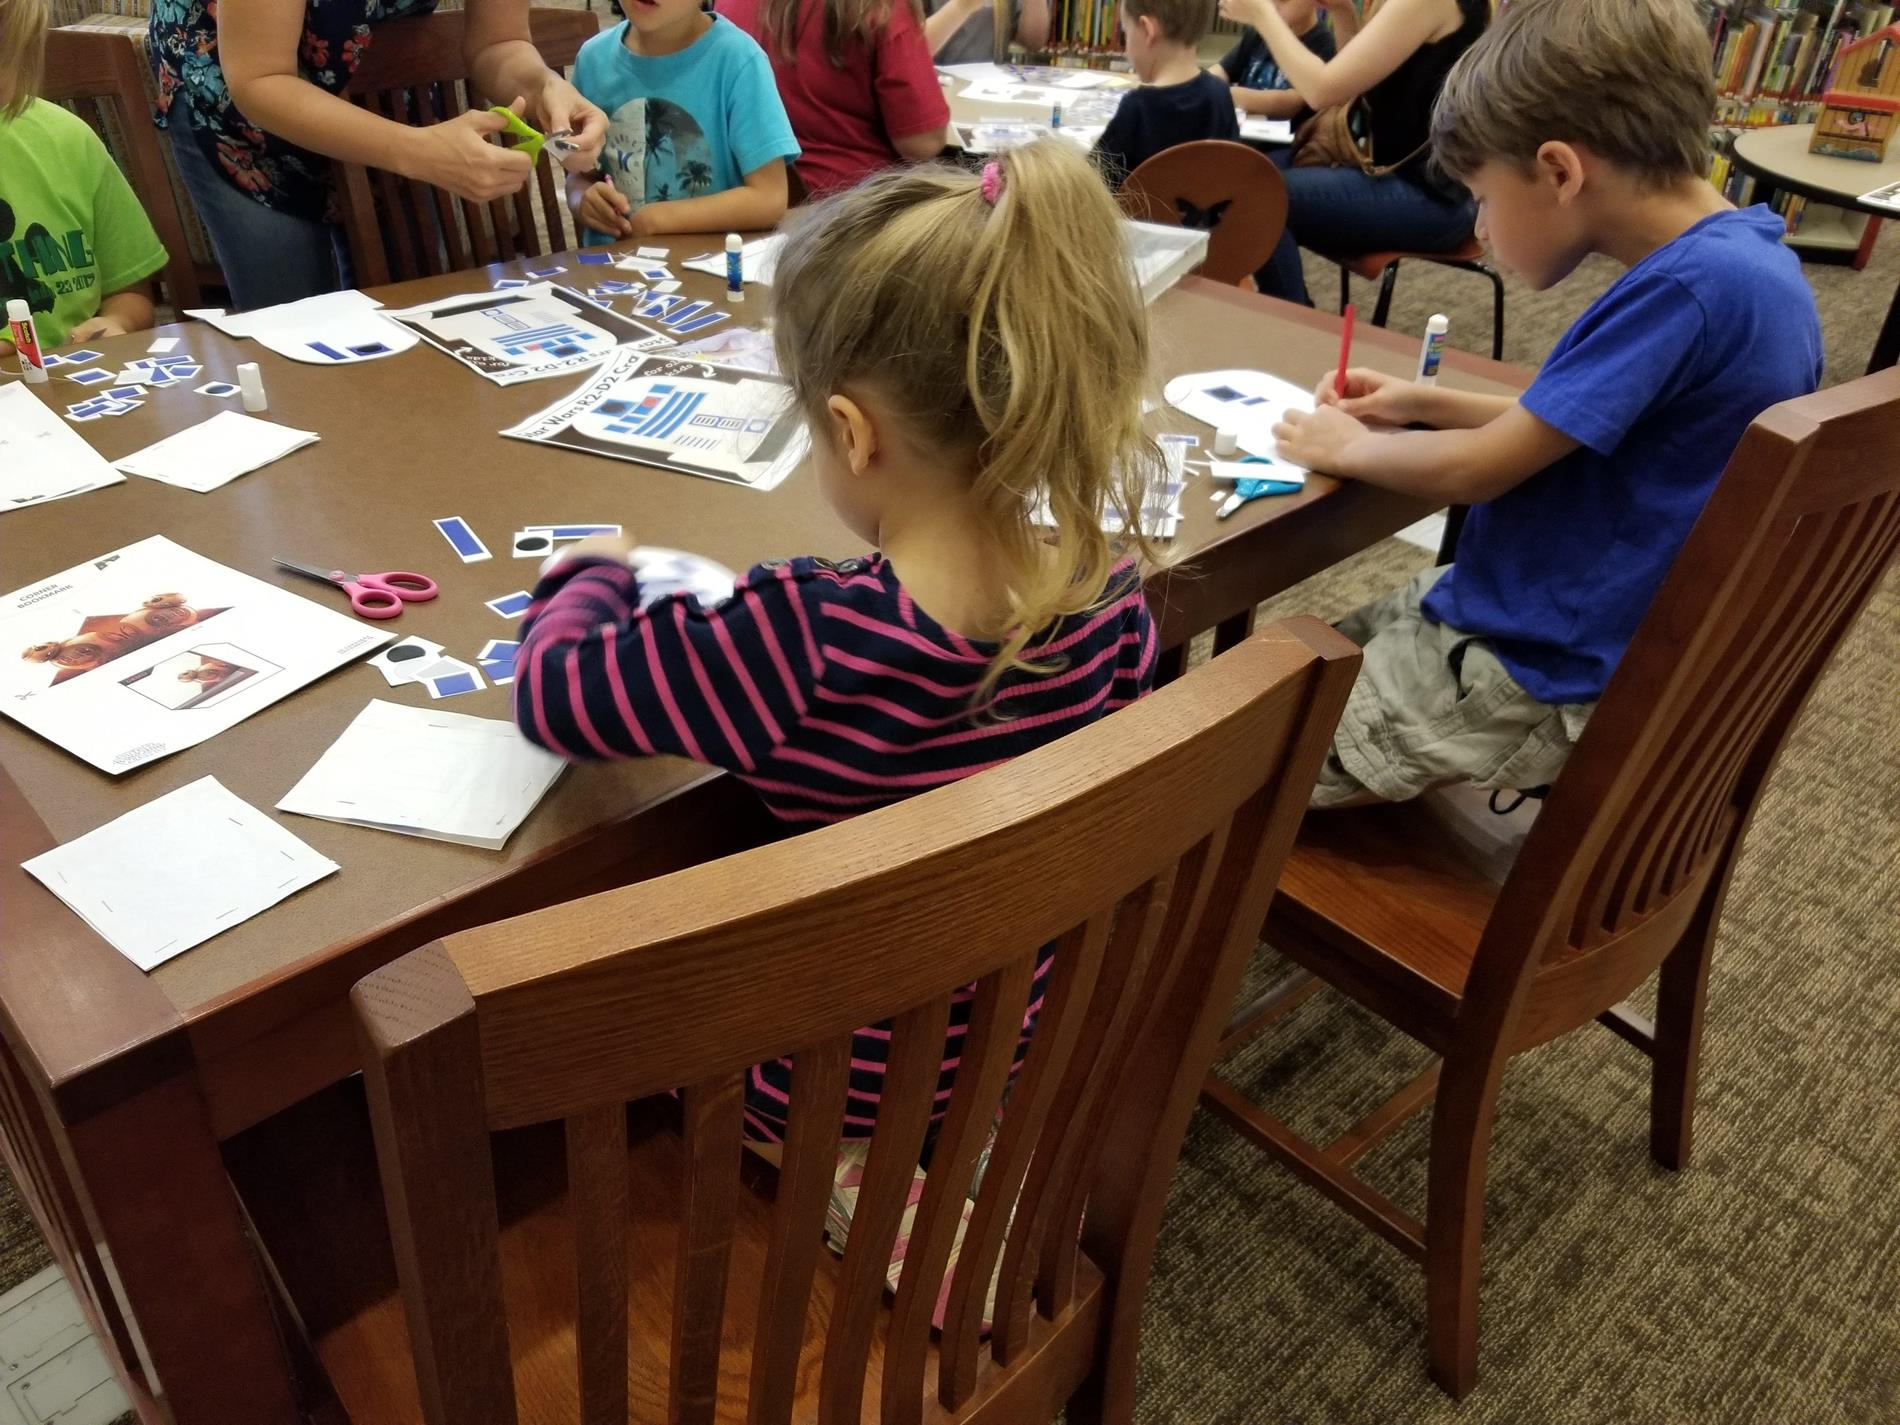 children at a table in the SFPL Library working on Star Wars themed crafts.